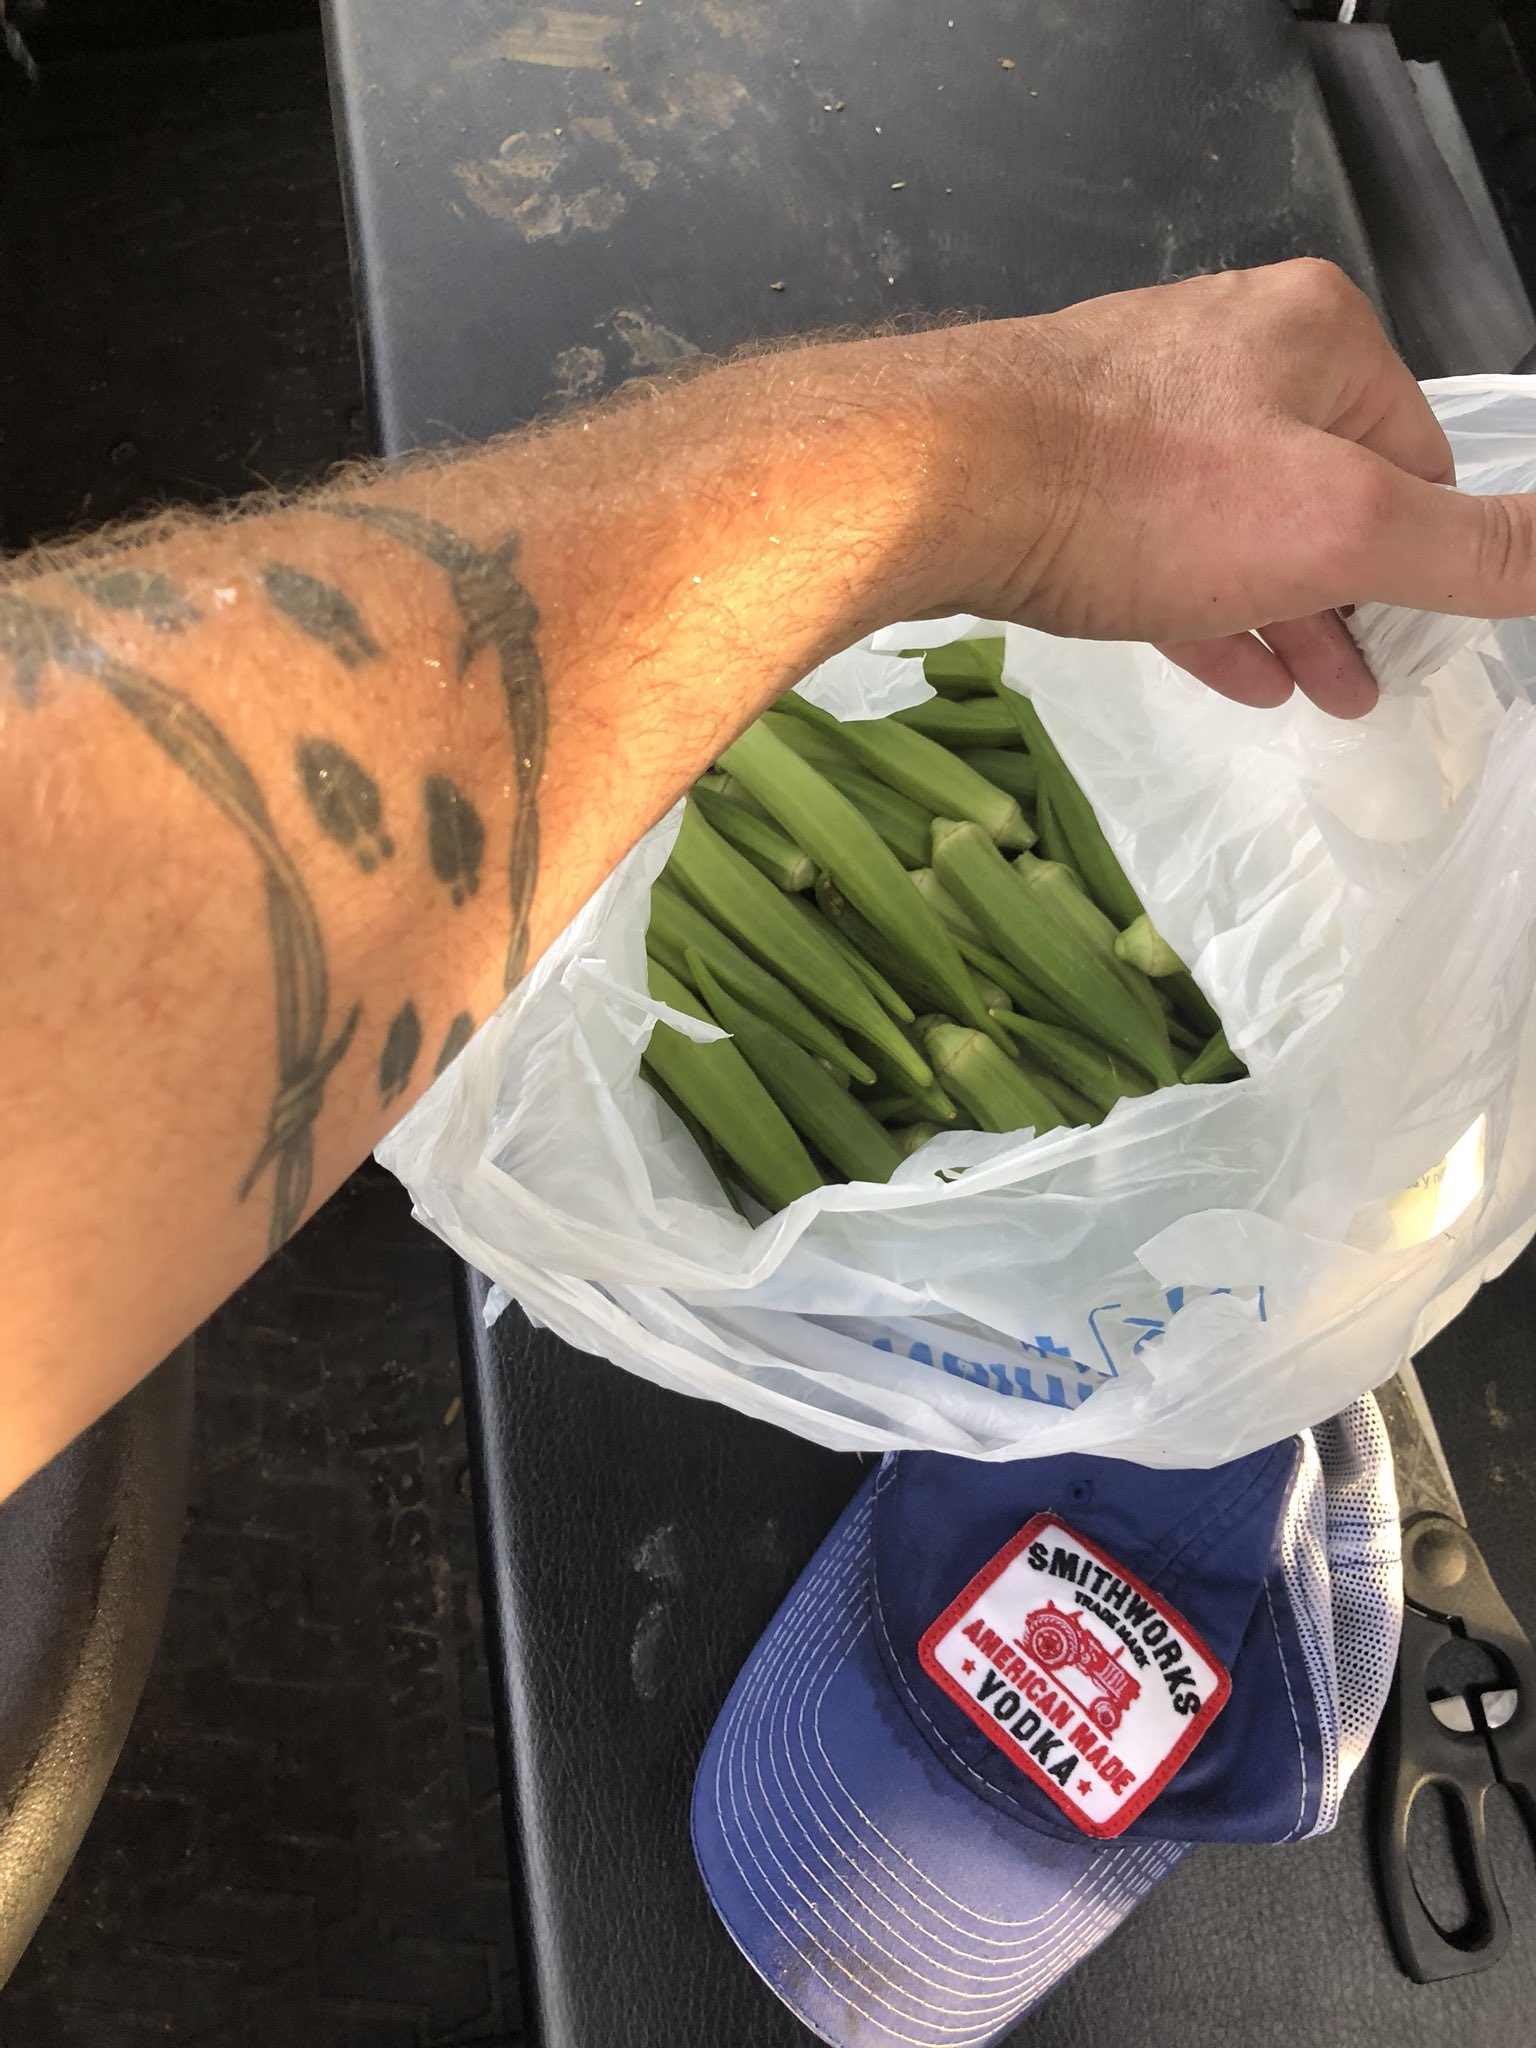 FYI... Wear long sleeves and gloves when picking okra!!!! My god!!! #itchinglikeasomebitch https://t.co/B3vV2BvRay